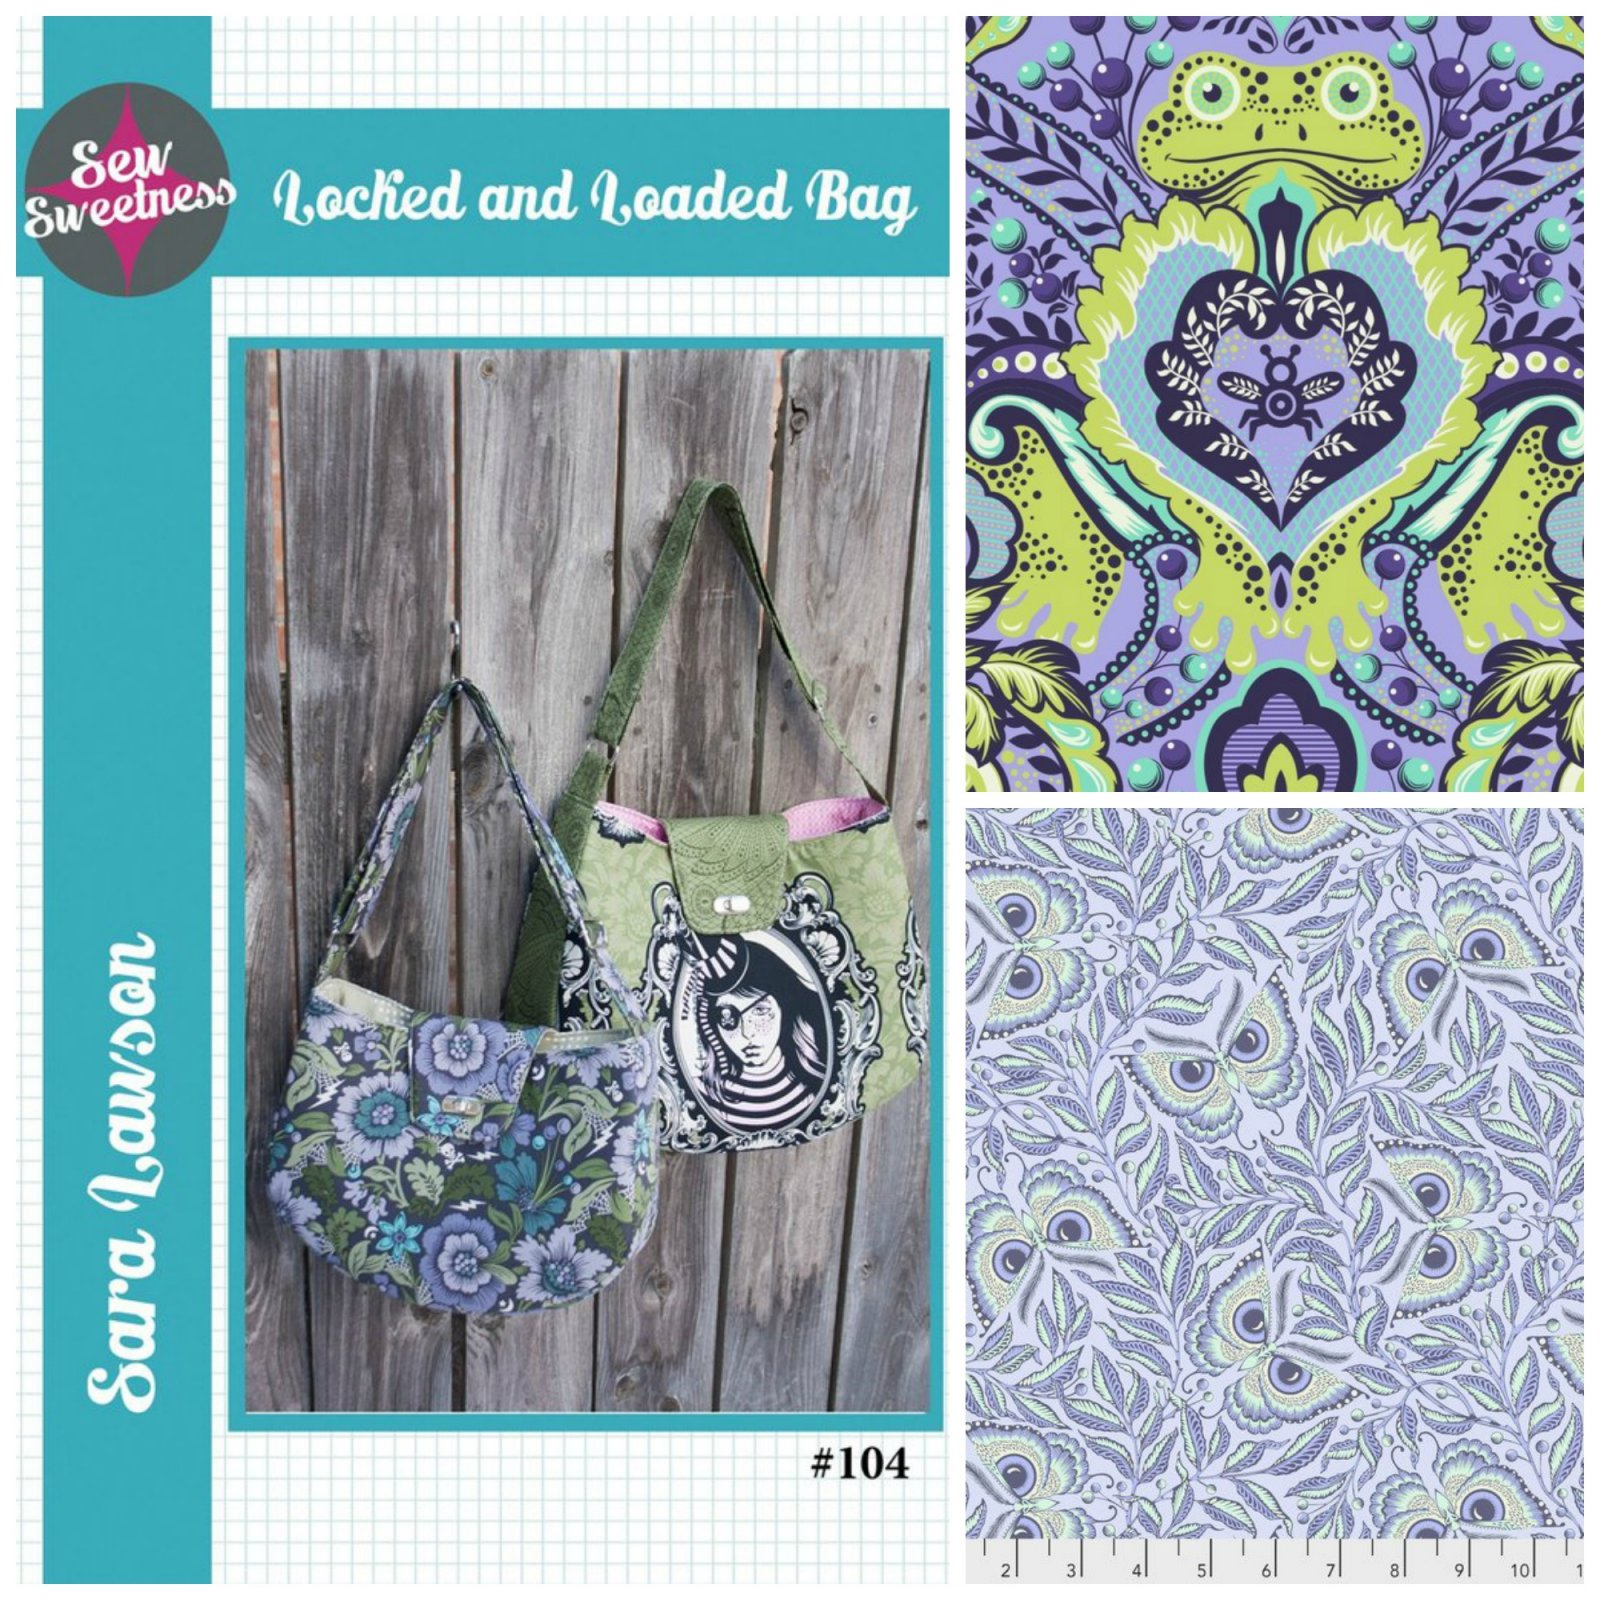 Sew Sweetness- Locked and Loaded Bag (Kit featuring Tula Pink All Stars and Pinkerville))